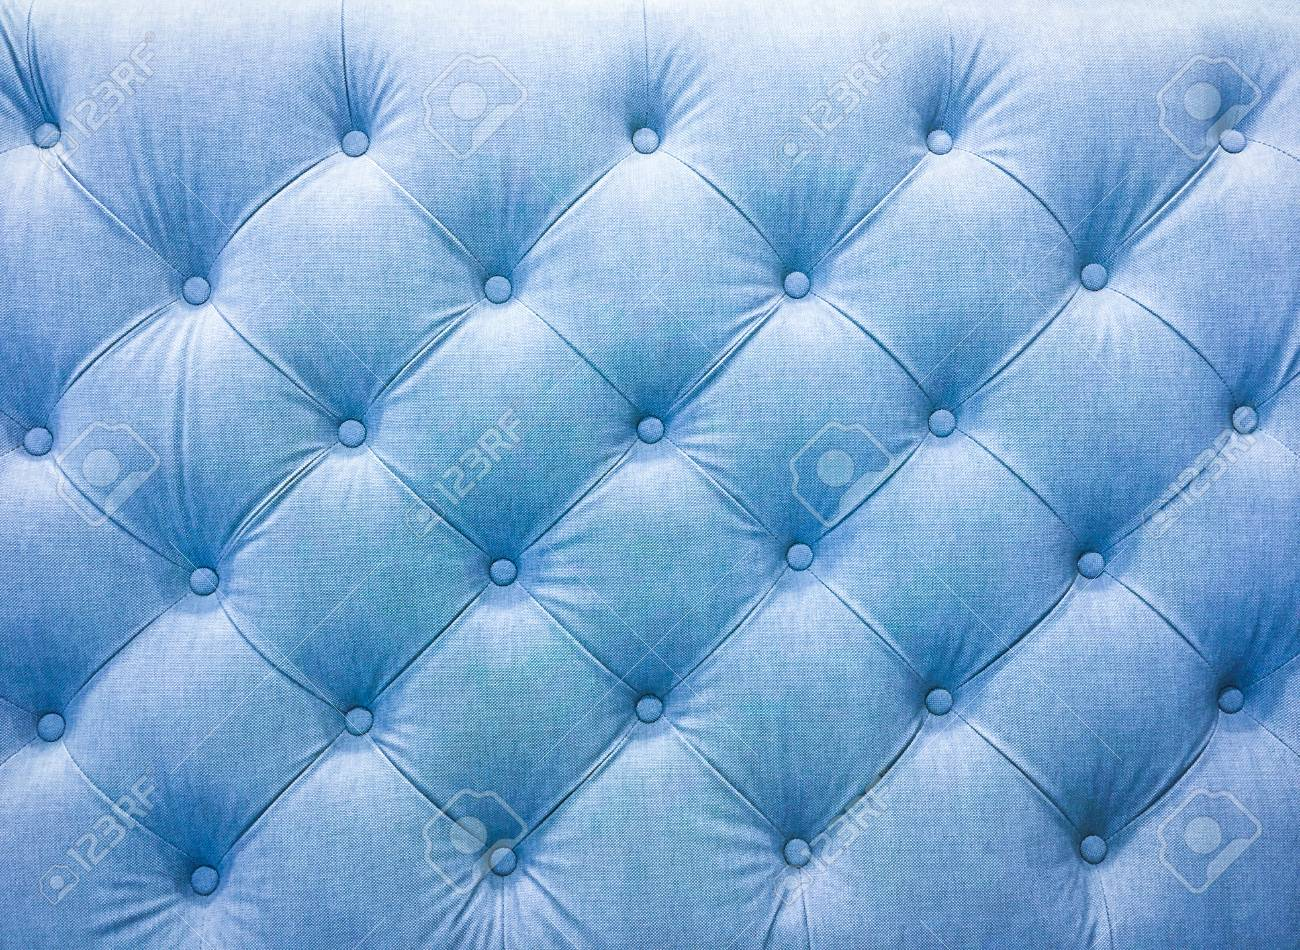 Upholstery Sofa Fabric With Rivets. Blue Tone. Stock Photo, Picture And Royalty Free Image. Image 109206498.